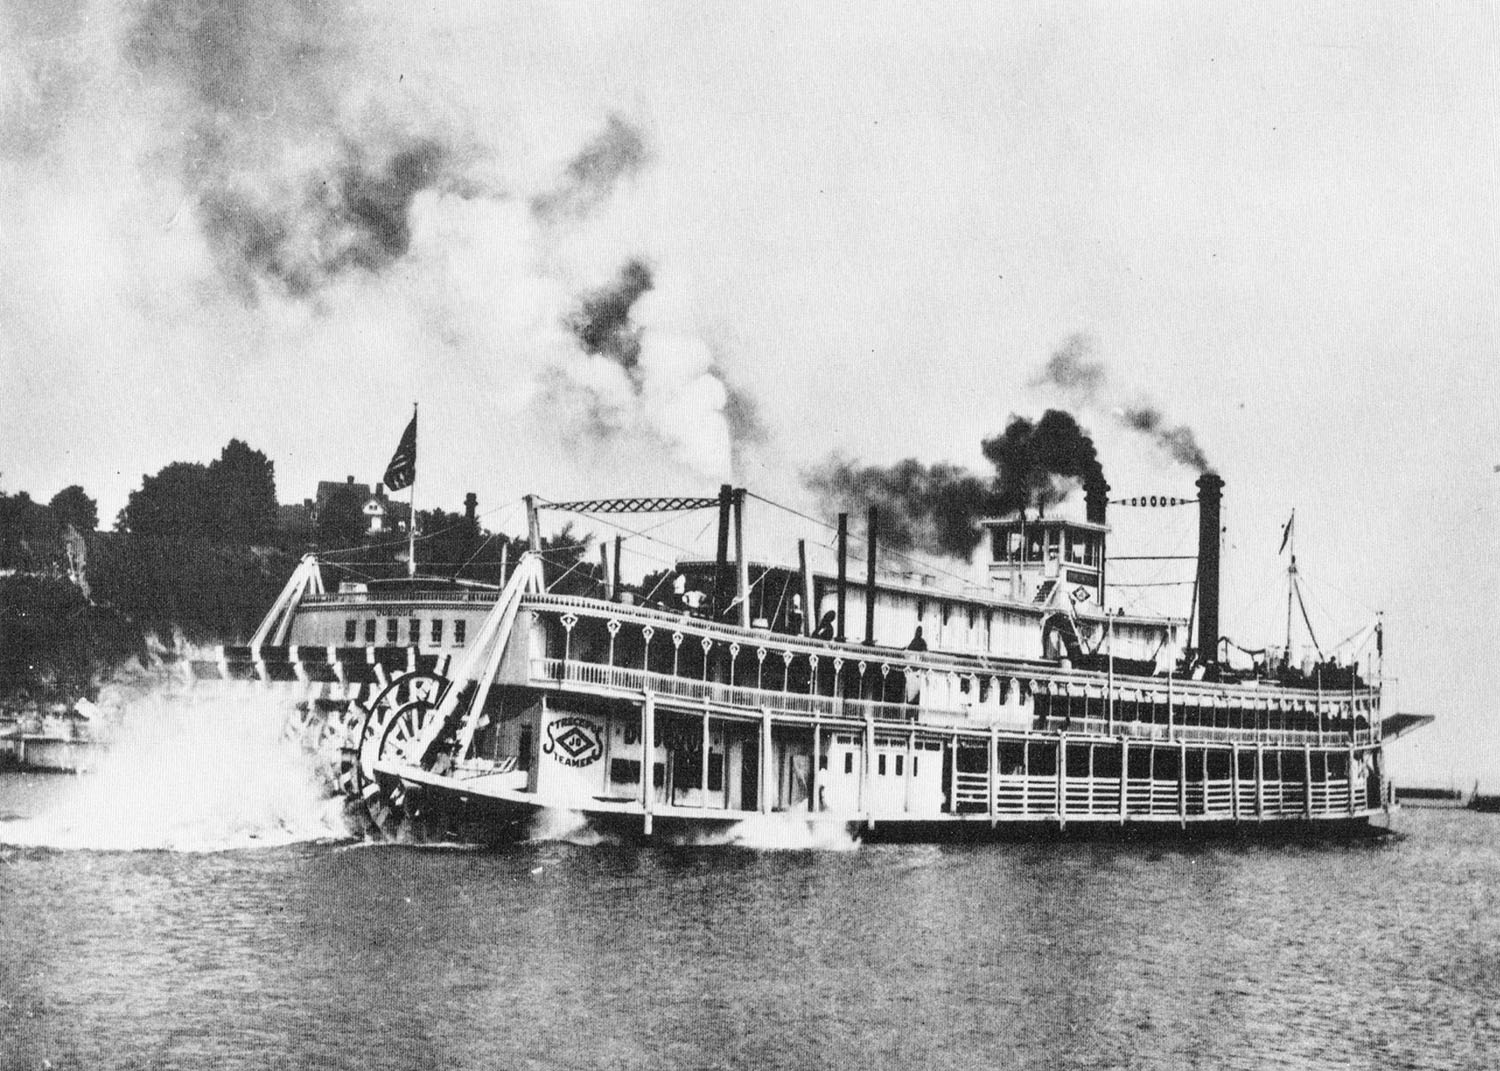 The Dubuque underway on the Mississippi River. (Keith Norrington collection)